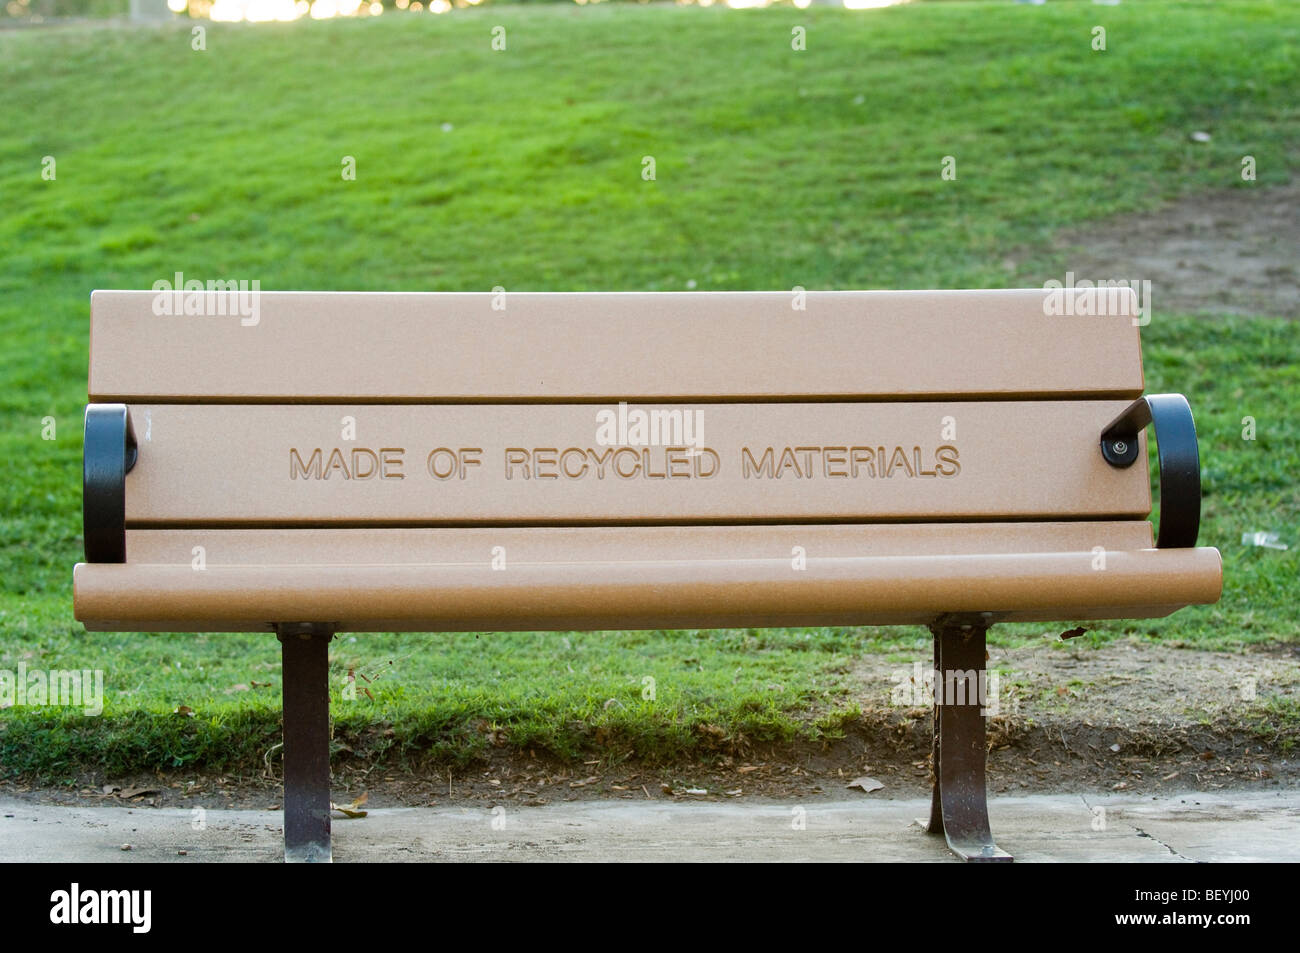 Park bench with a prominently displayed message indicating that it is manufactured with recycled materials. - Stock Image